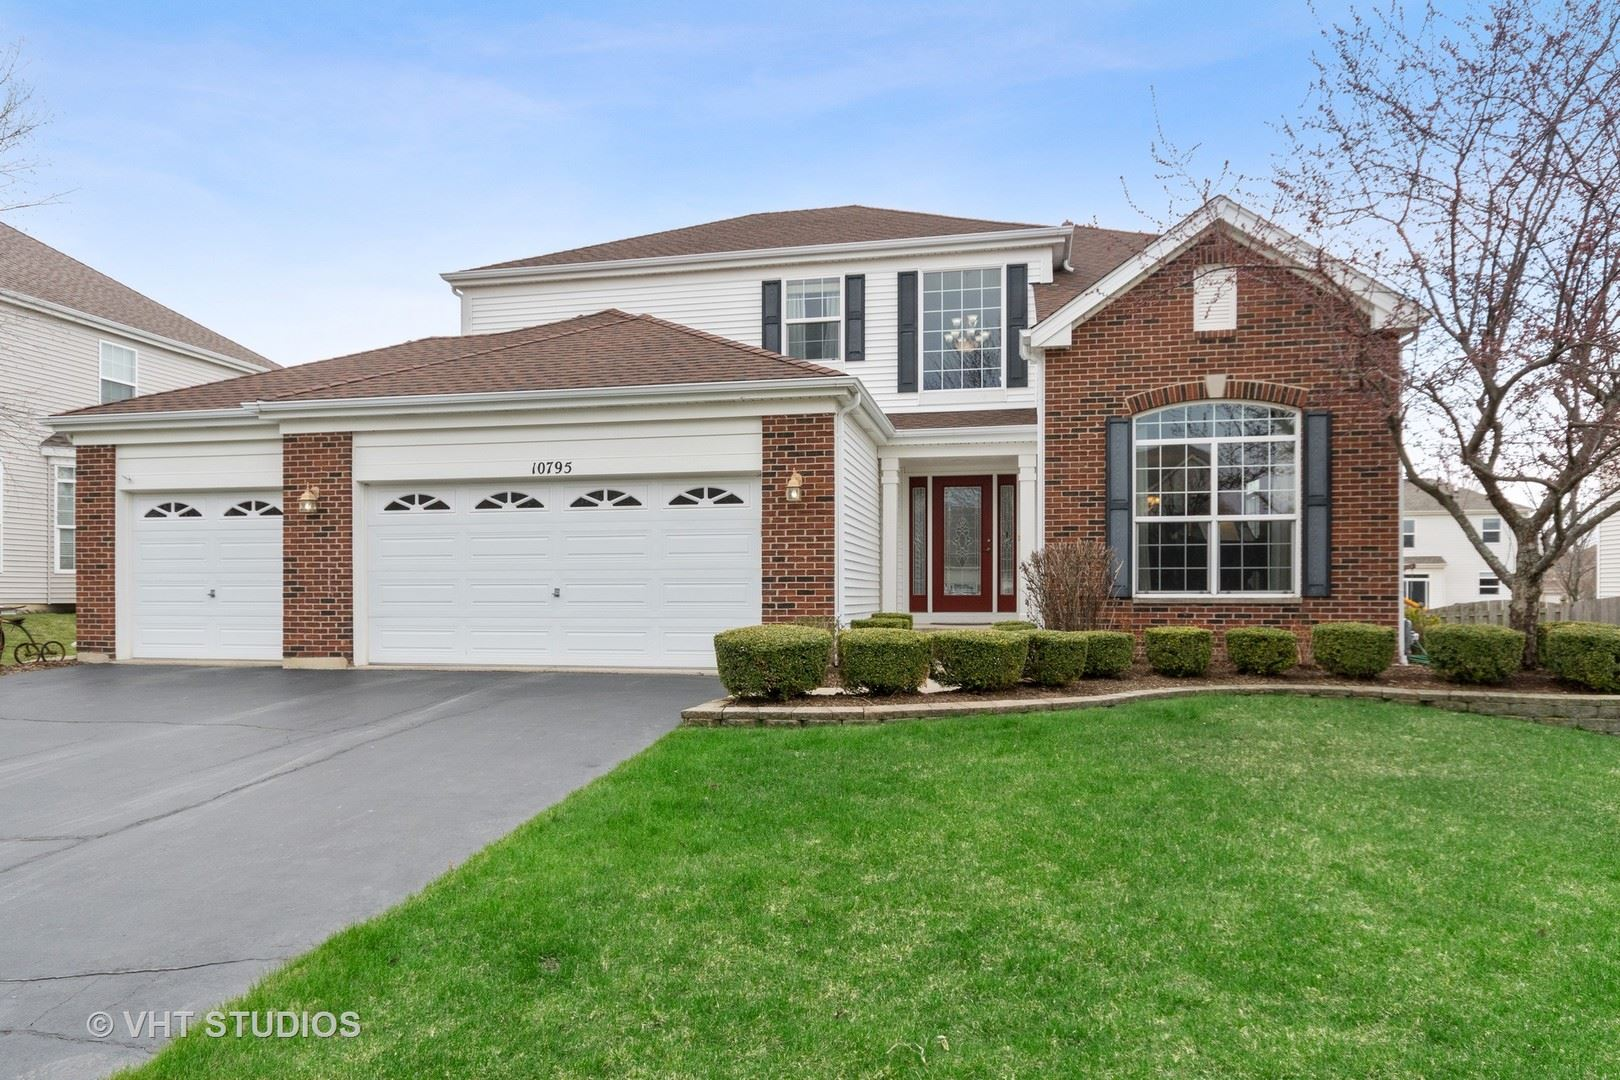 10795 ALLEGHENY PASS, Huntley, IL 60142 - #: 10700179